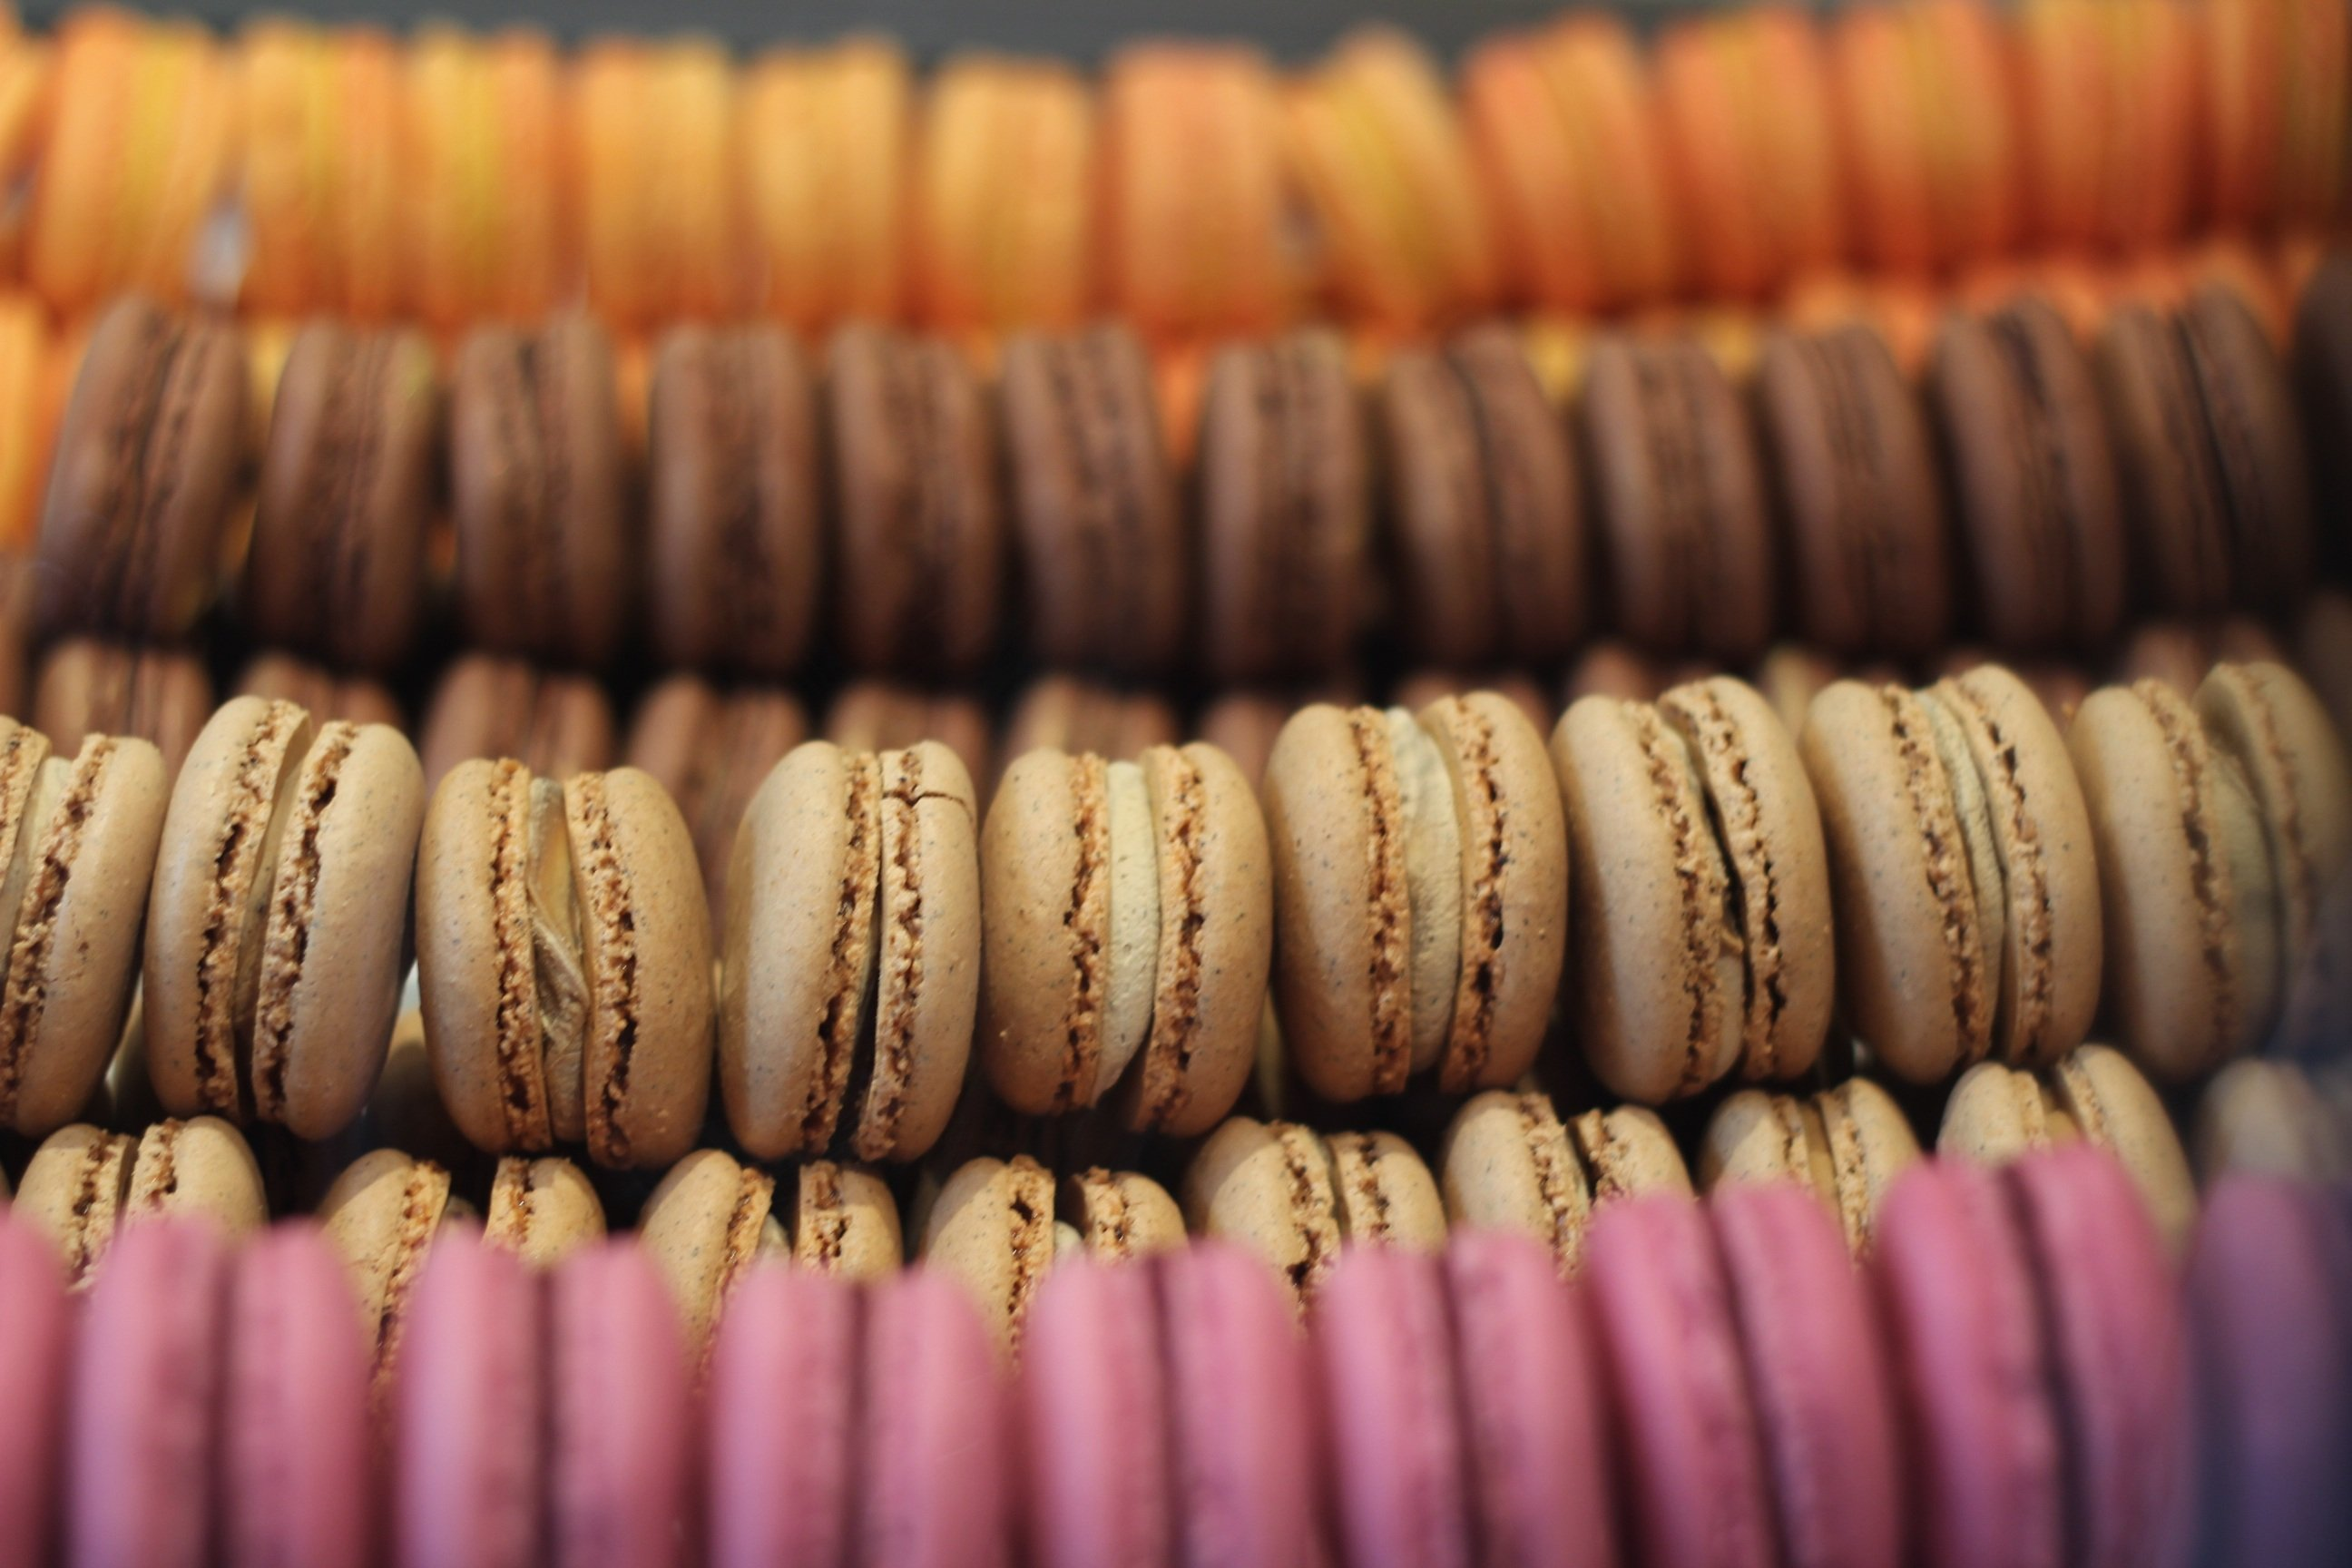 macarons-dessert-bakery-french-macaroons